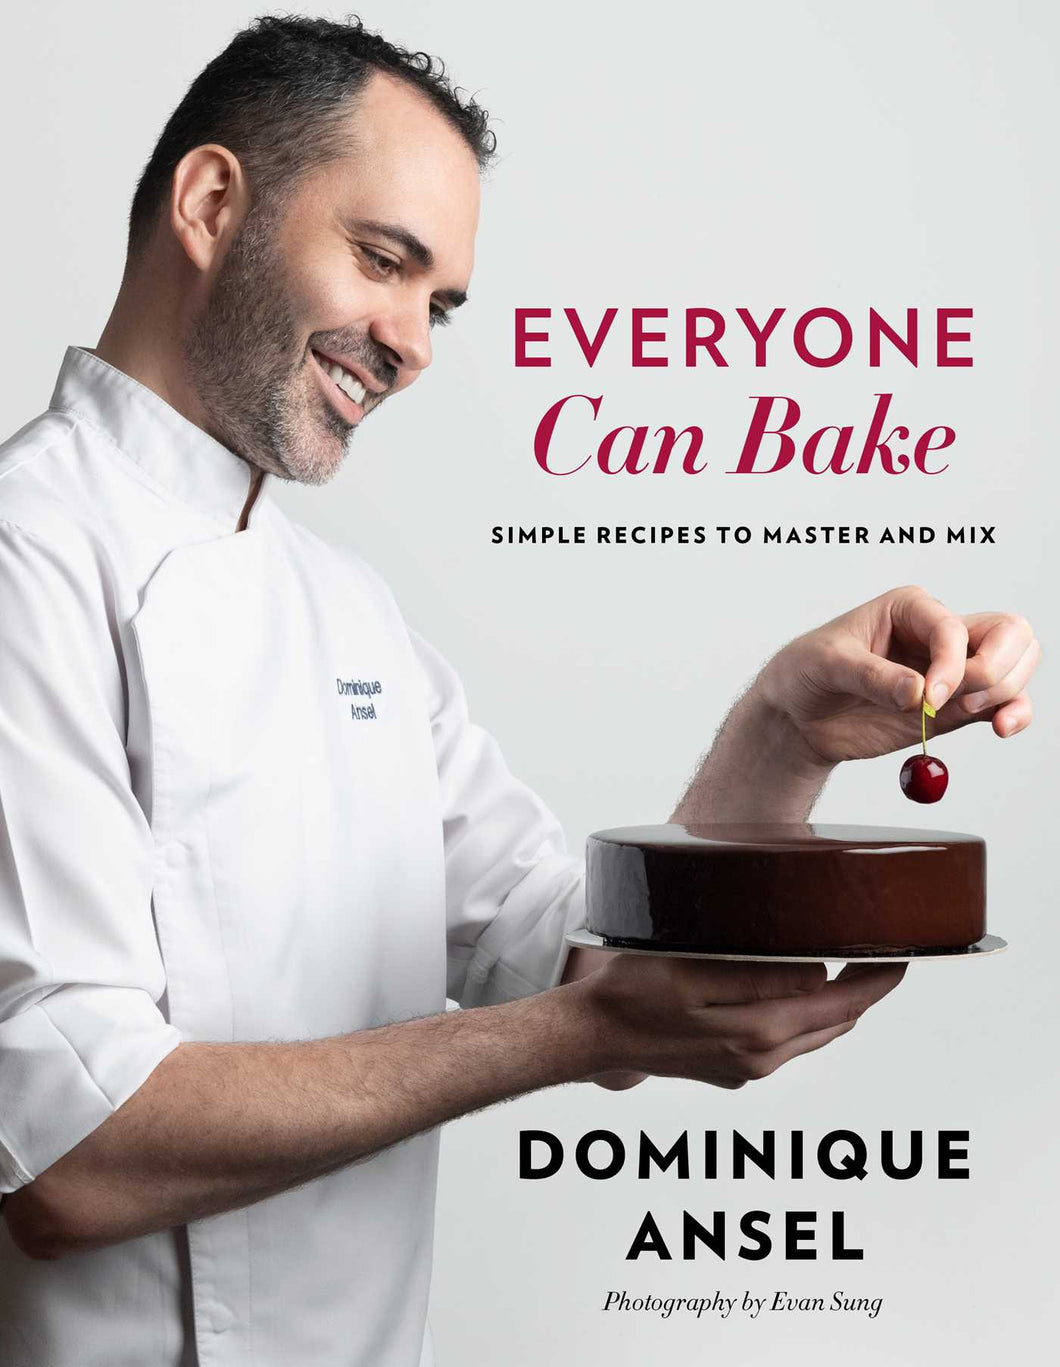 Everyone Can Bake by Dominique Ansel